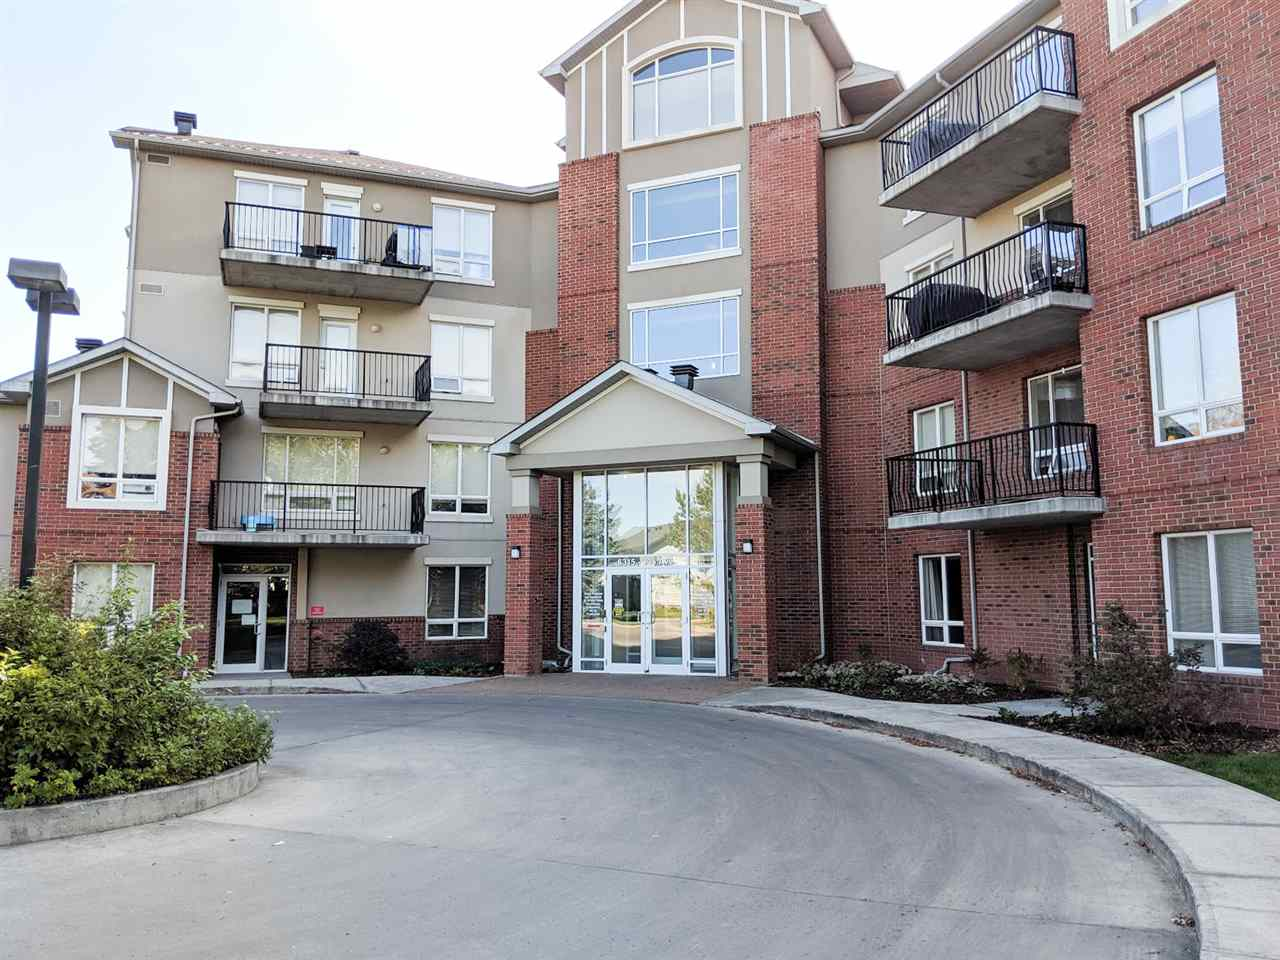 FEATURED LISTING: 218 - 6315 135 Avenue Edmonton